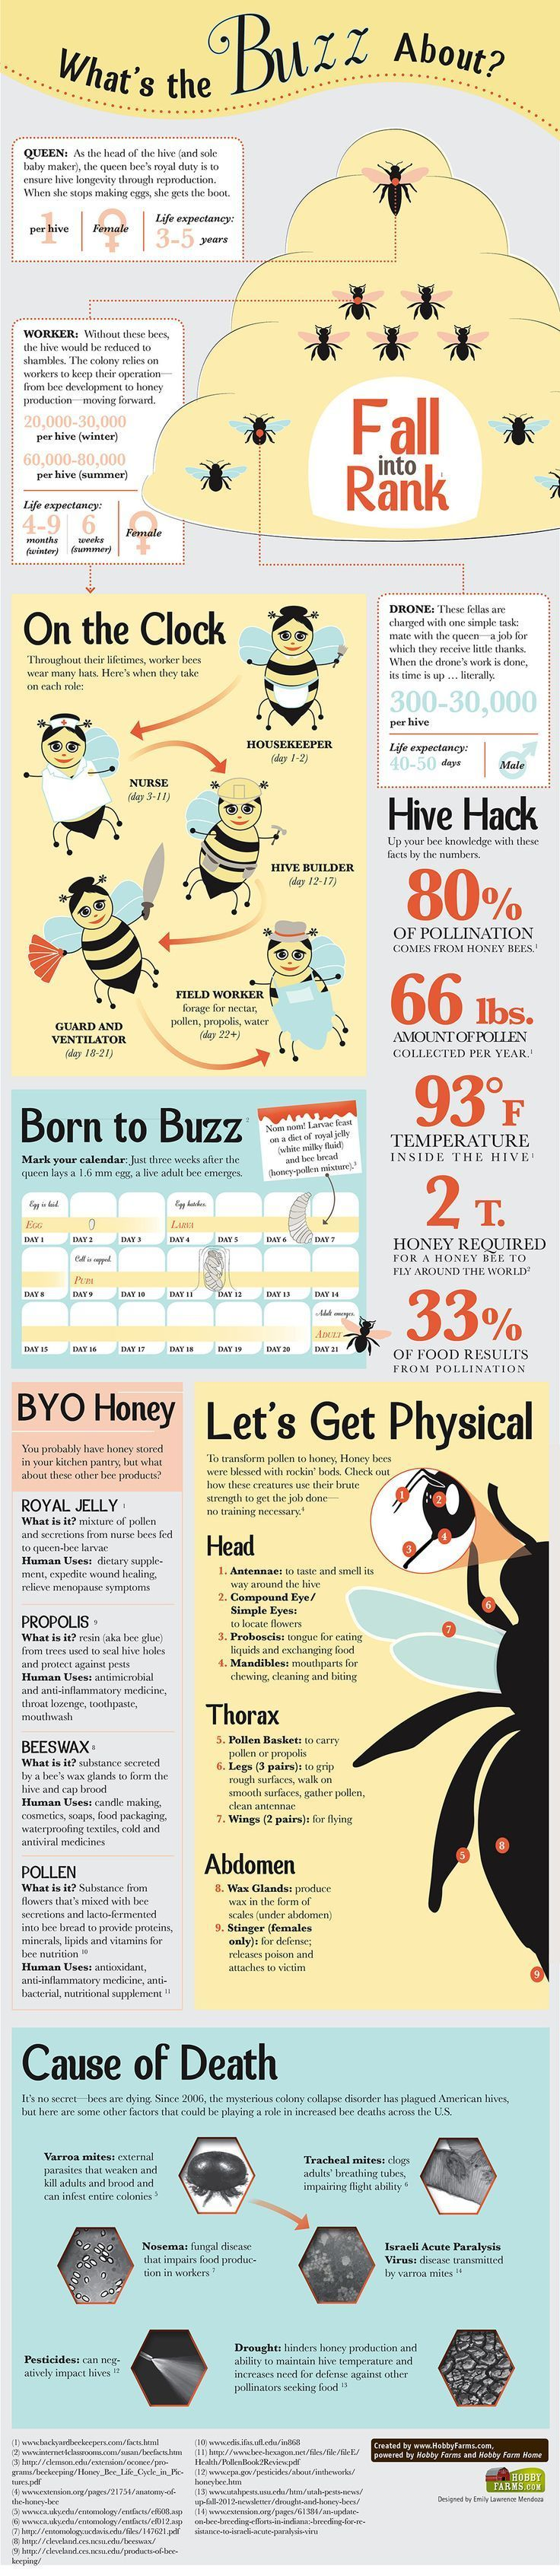 Bees! Bees! And more Bees! See what the buzz is about! #Bees101